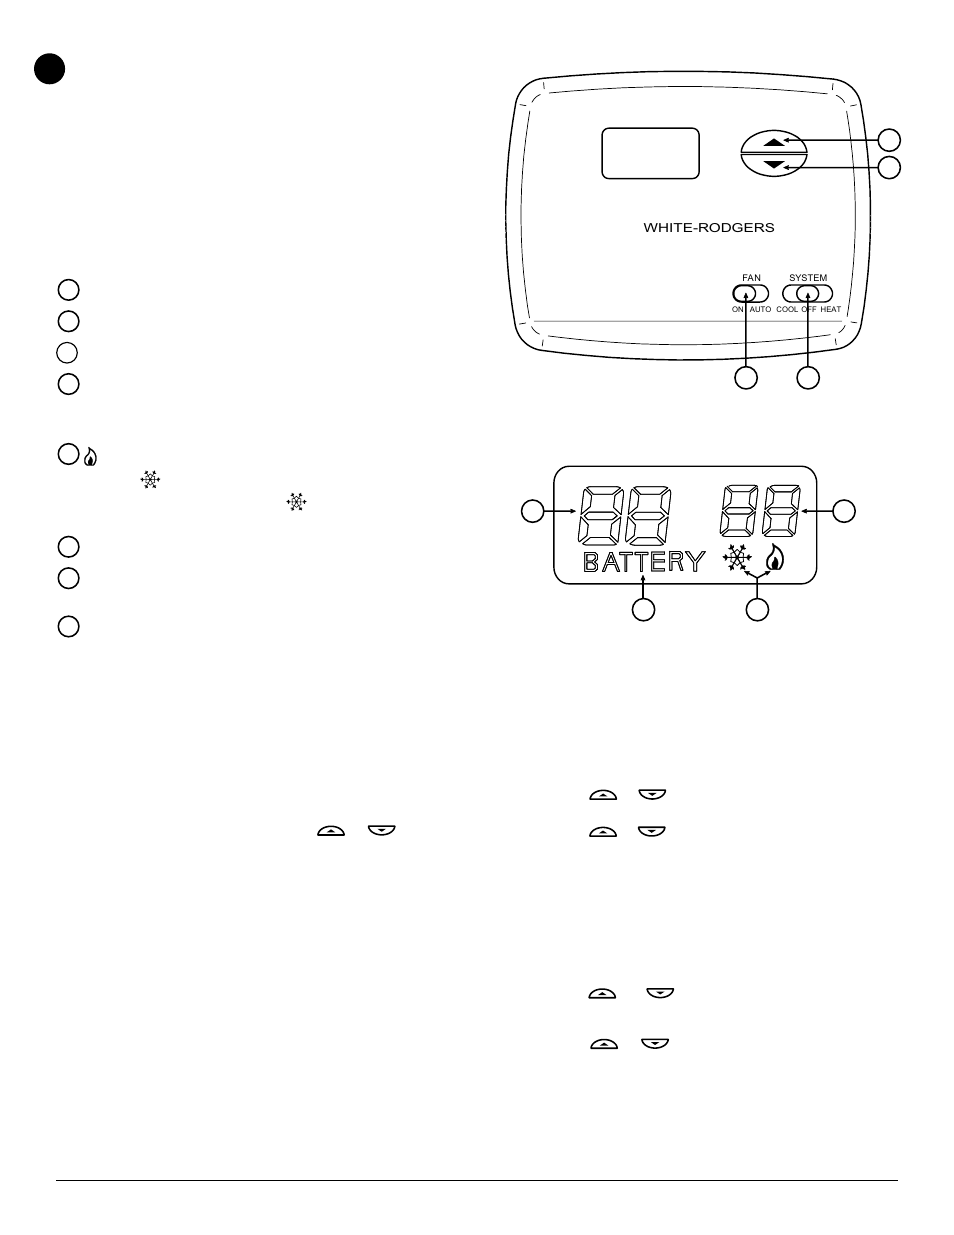 Check Thermostat Operation White Rodgers Thermostat 1f78